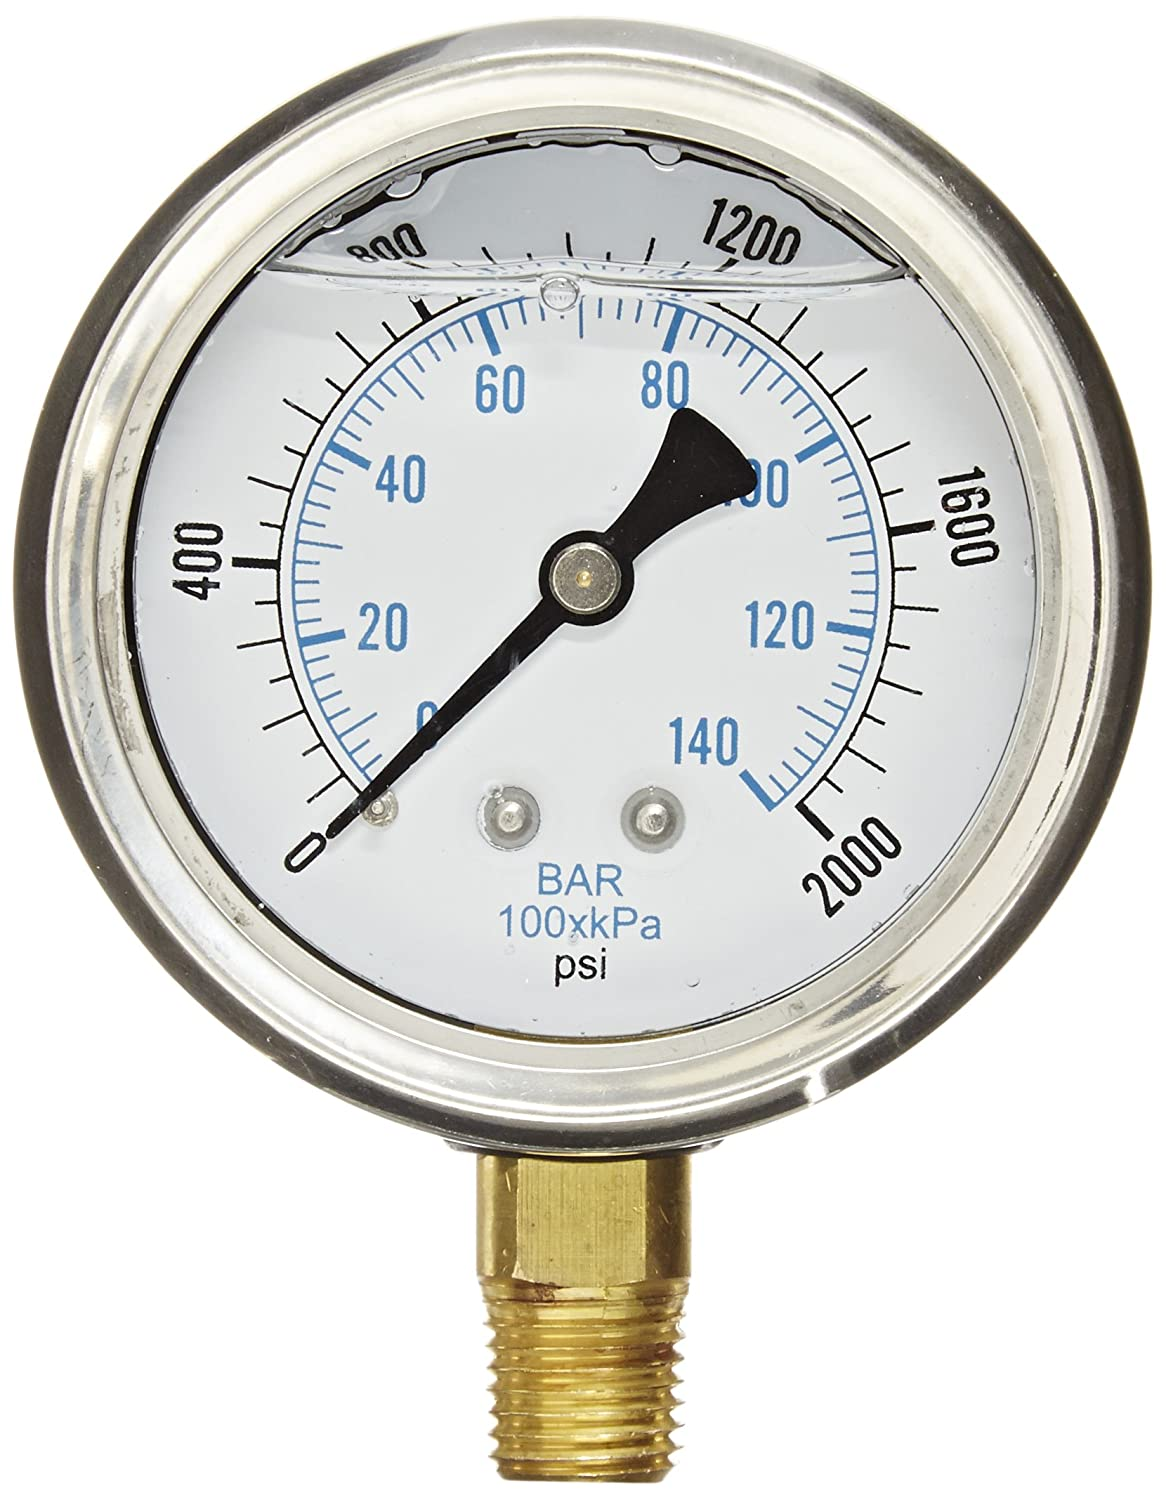 PIC Gauge PRO 201L 254O Glycerin Filled Industrial Bottom Mount Pressure Gauge with Stainless Steel Case Brass Internals Plastic Lens 2 1 2 Dial Size 1 4 Male NPT 0 2000 psi